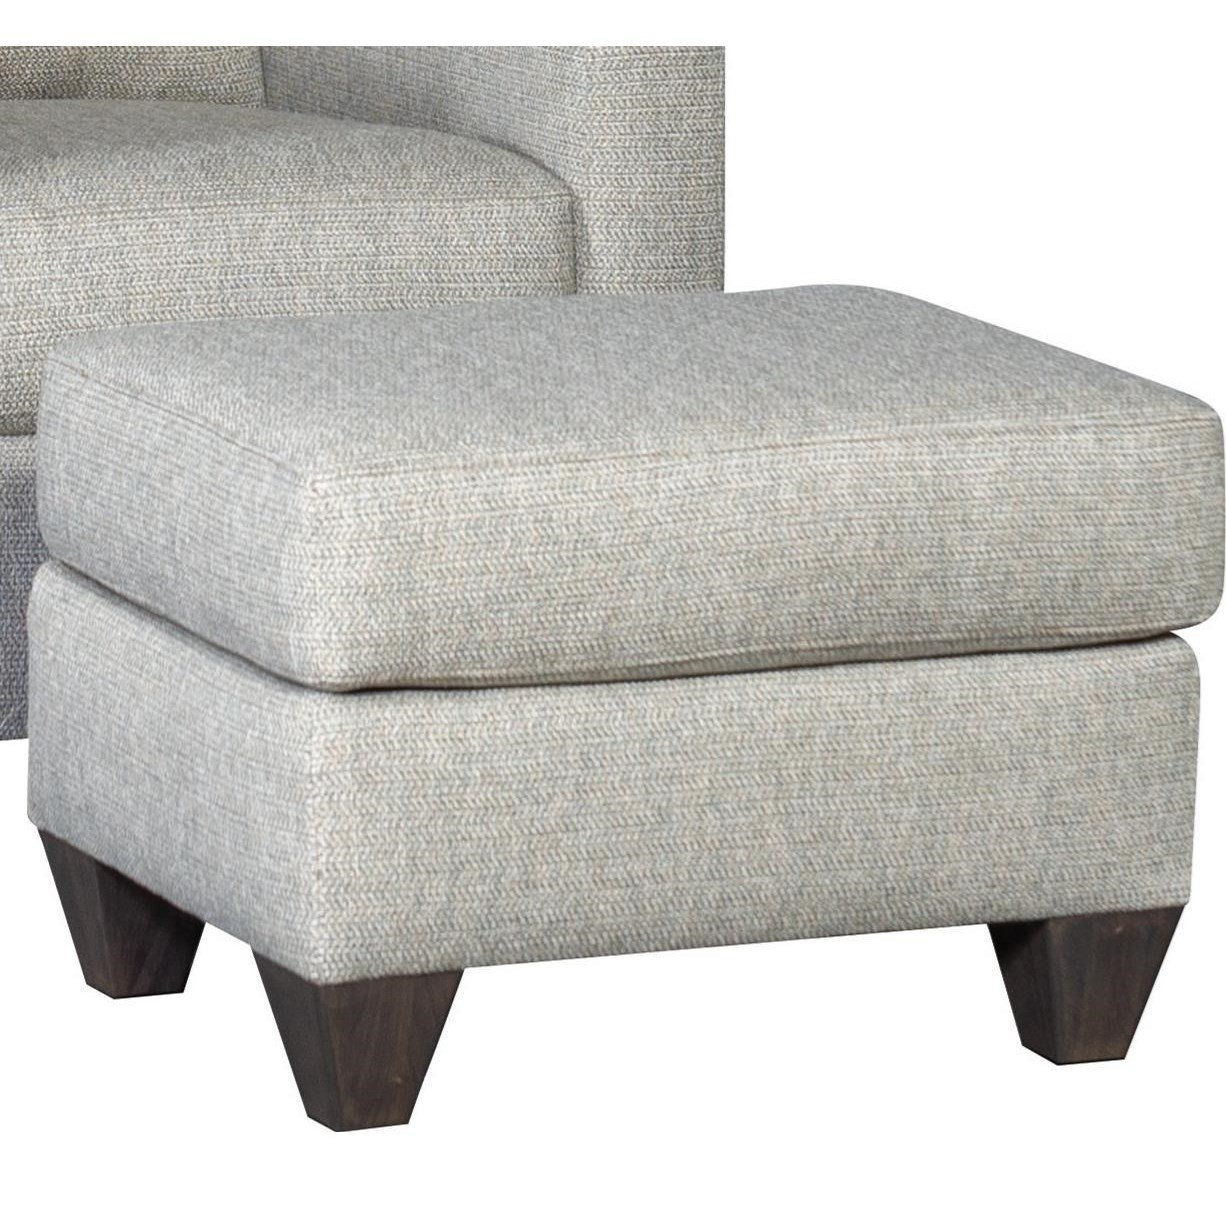 3488 Ottoman by Mayo at Wilcox Furniture